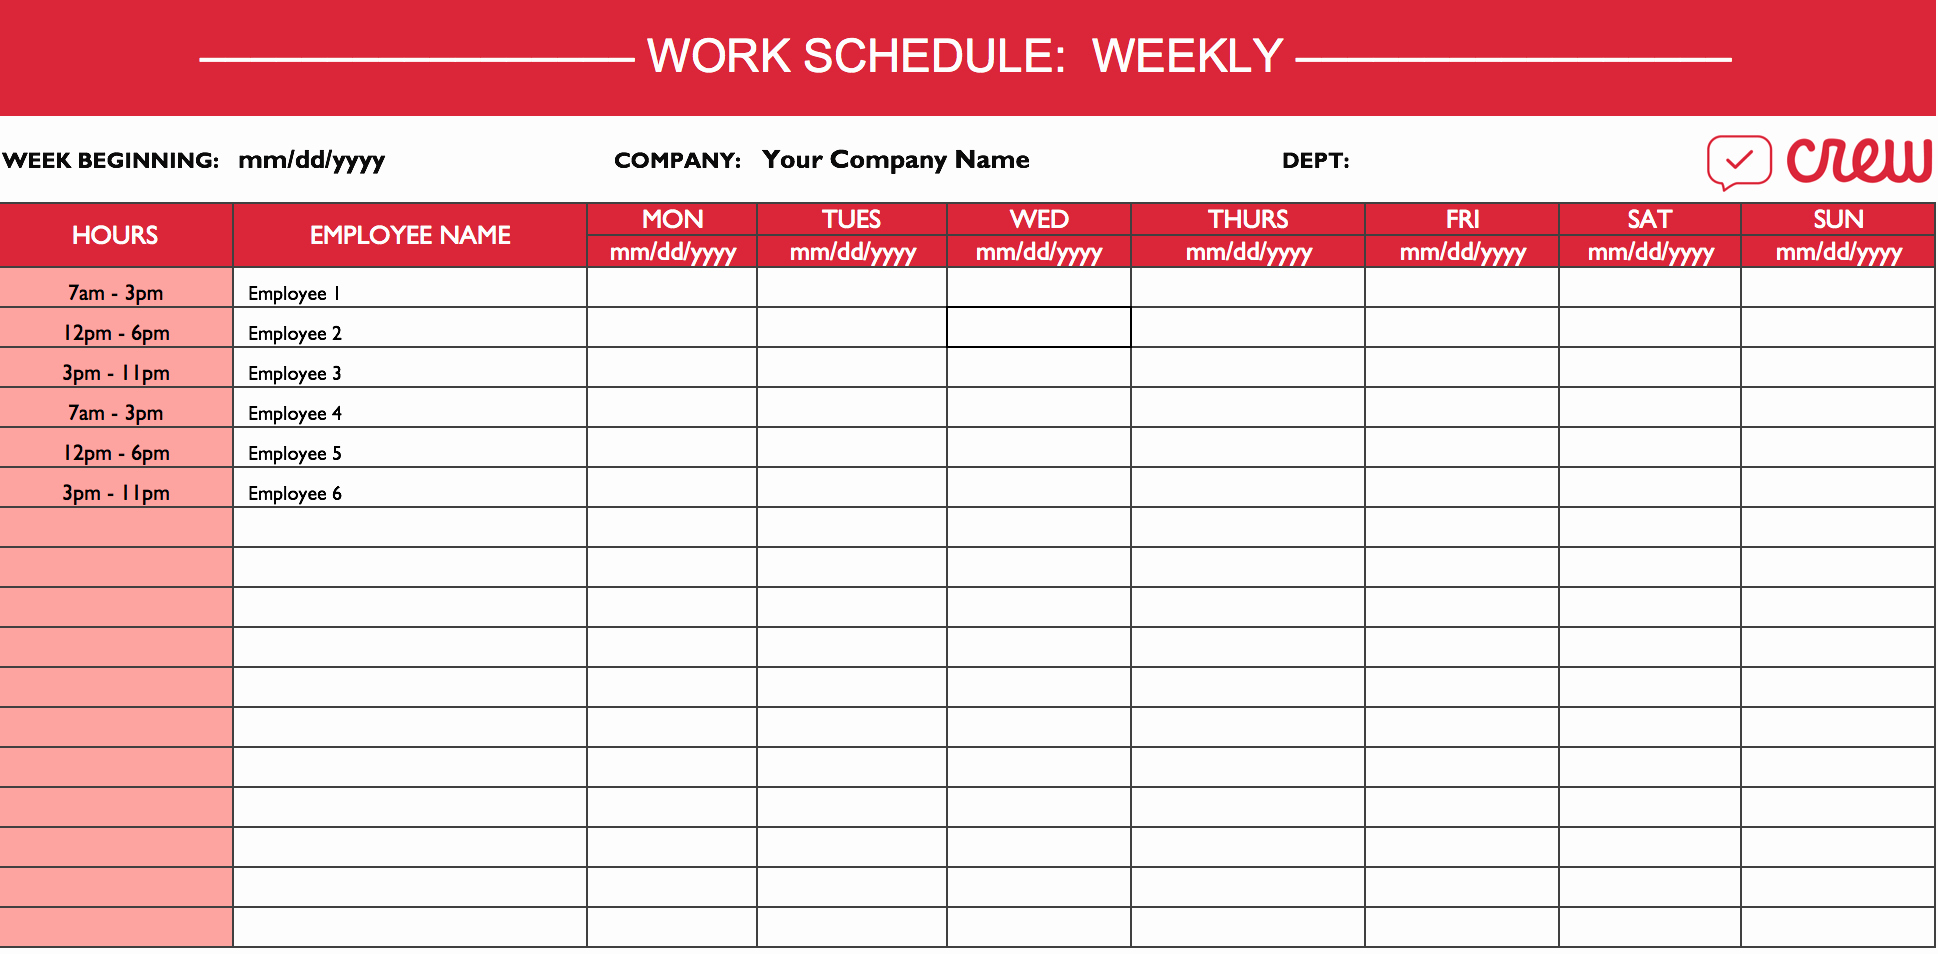 Work Week Schedule Template Awesome Weekly Work Schedule Template I Crew